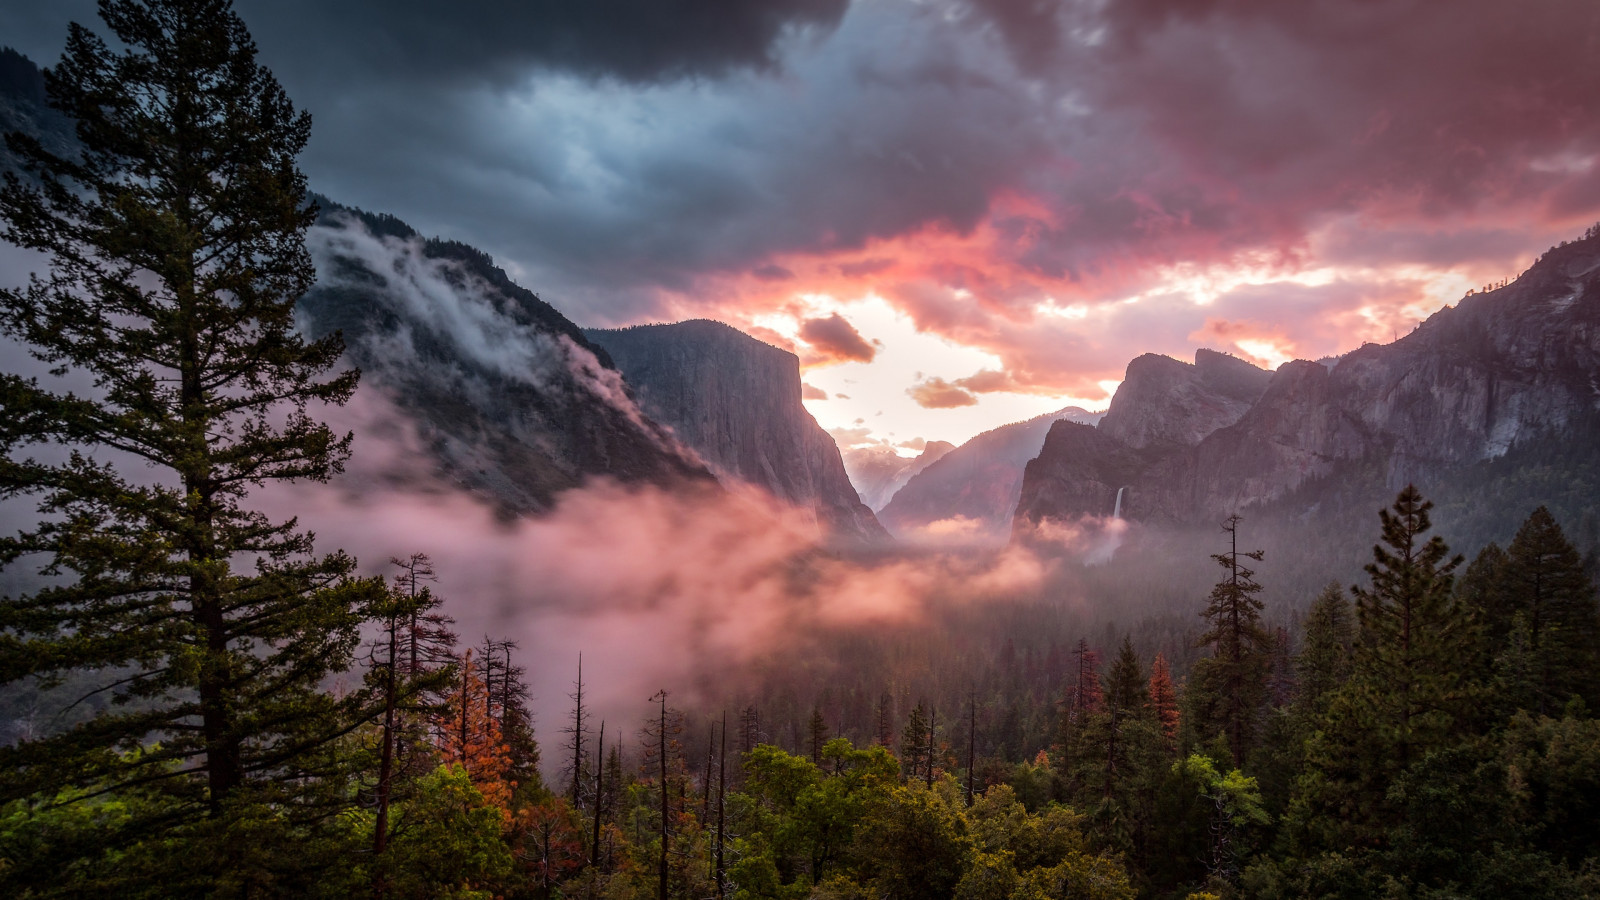 Landscape from Yosemite National Park | 1600x900 wallpaper